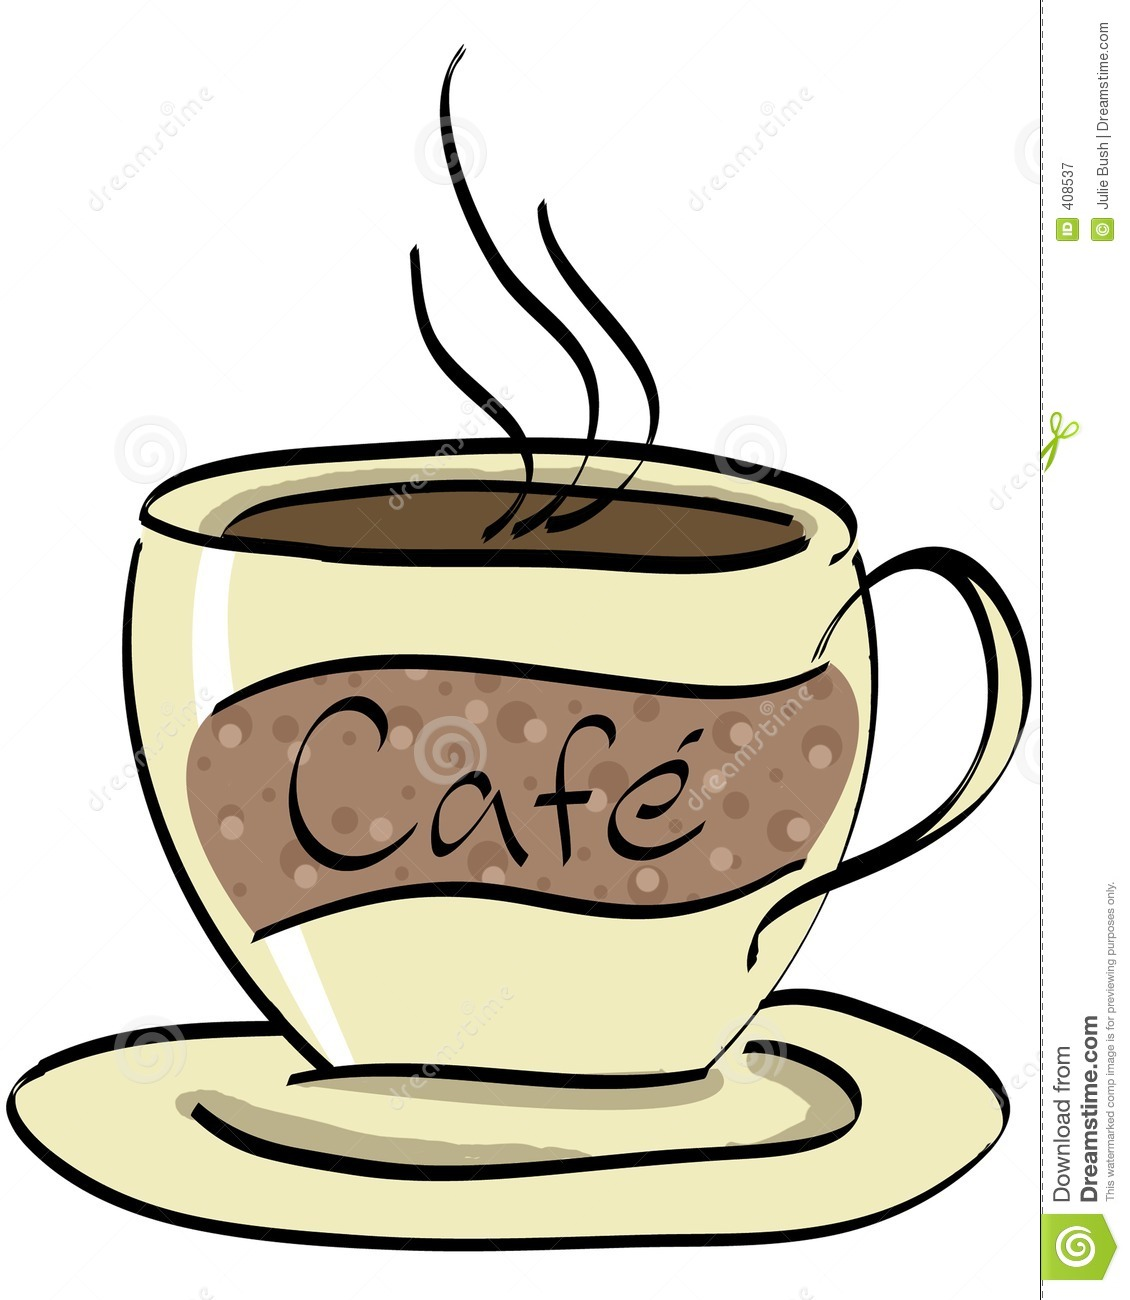 Coffee cup illustration drawn in illustrator.